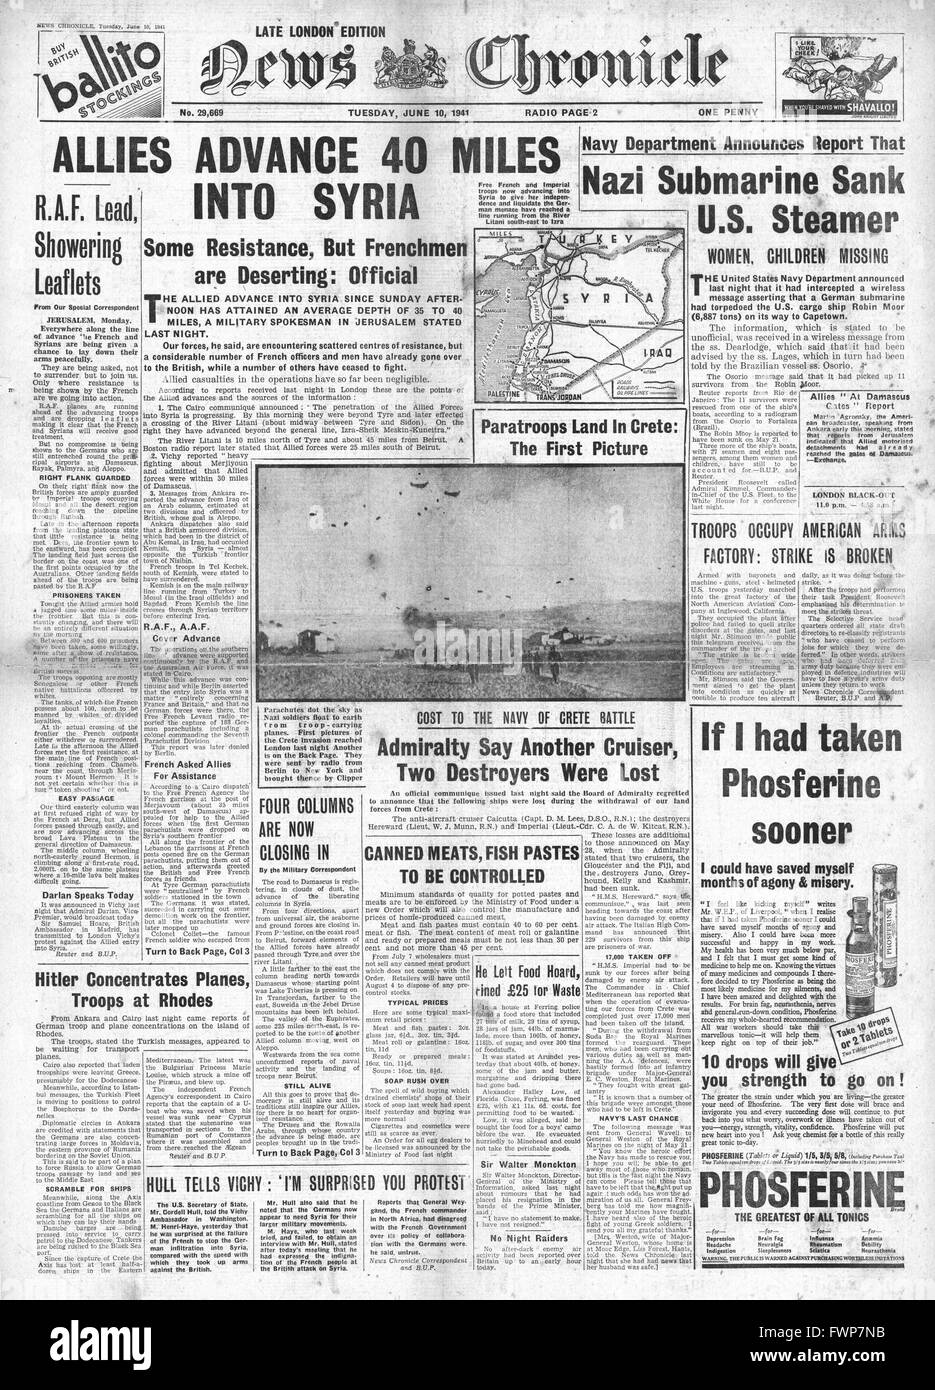 1941 front page News Chronicle Allies advance in Syria and SS Robin Moor sunk by U-Boat U69 - Stock Image